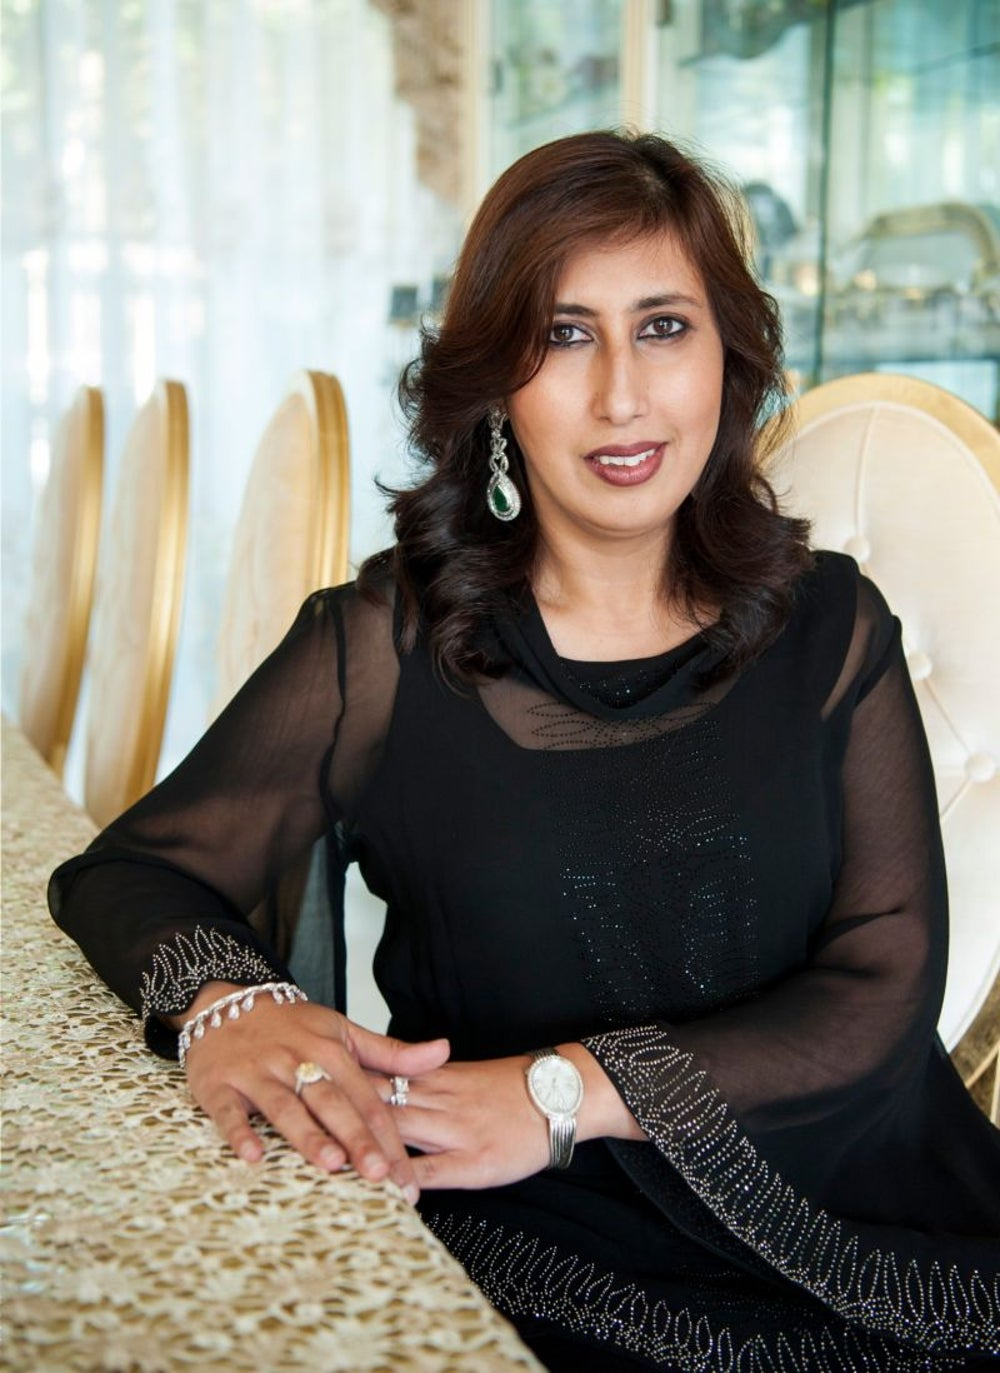 Uzma Irfan – Director, Prestige Group, Founder, Sublime - Betting On The Brands